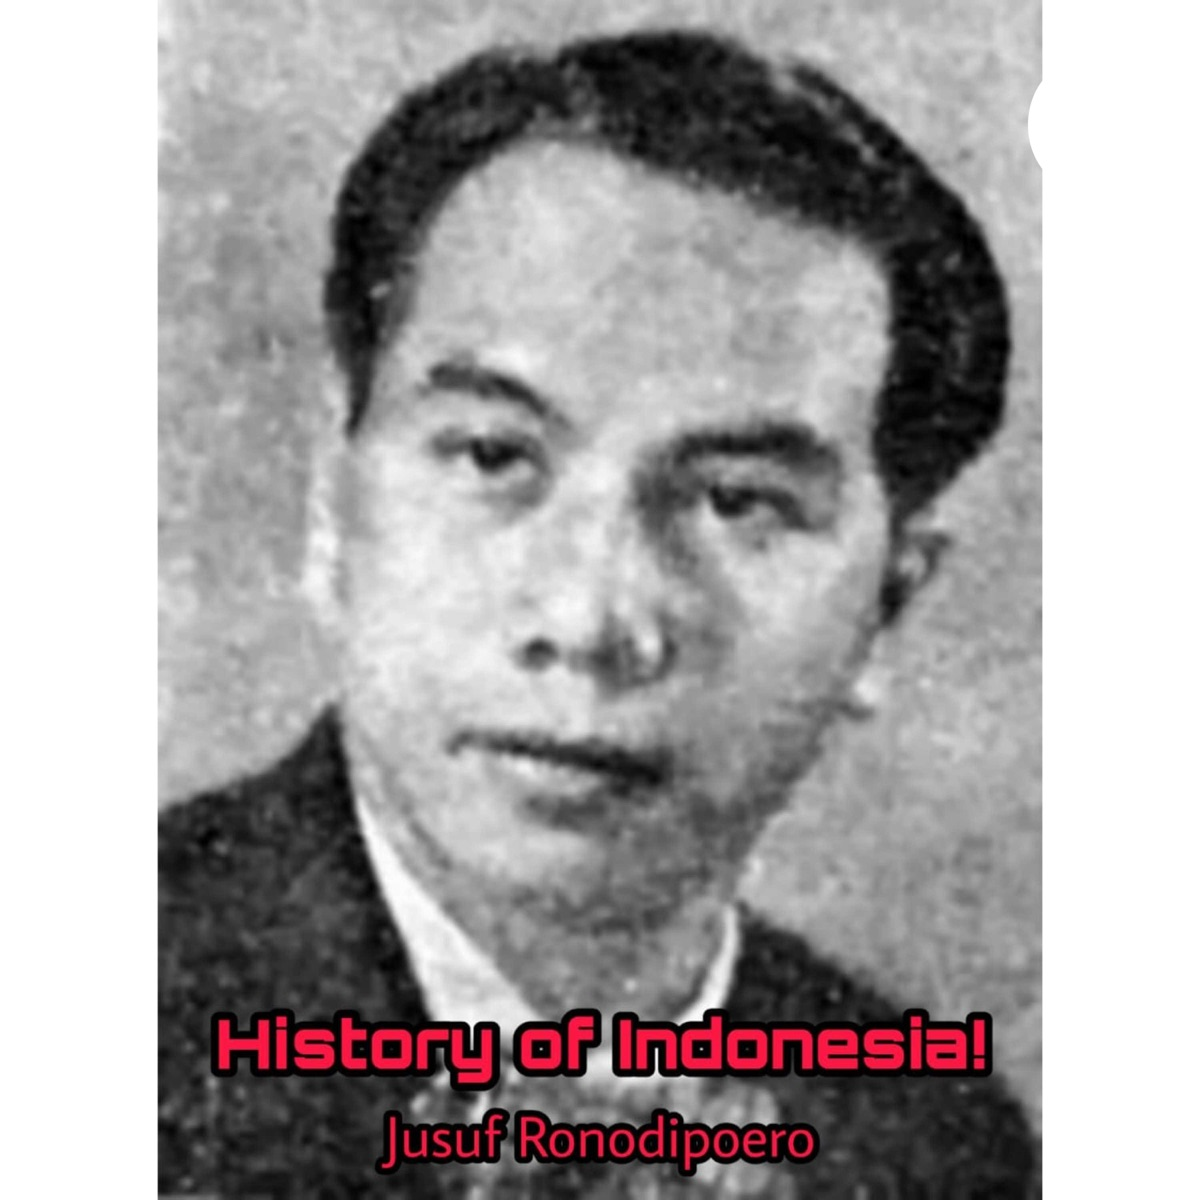 History of Indonesia